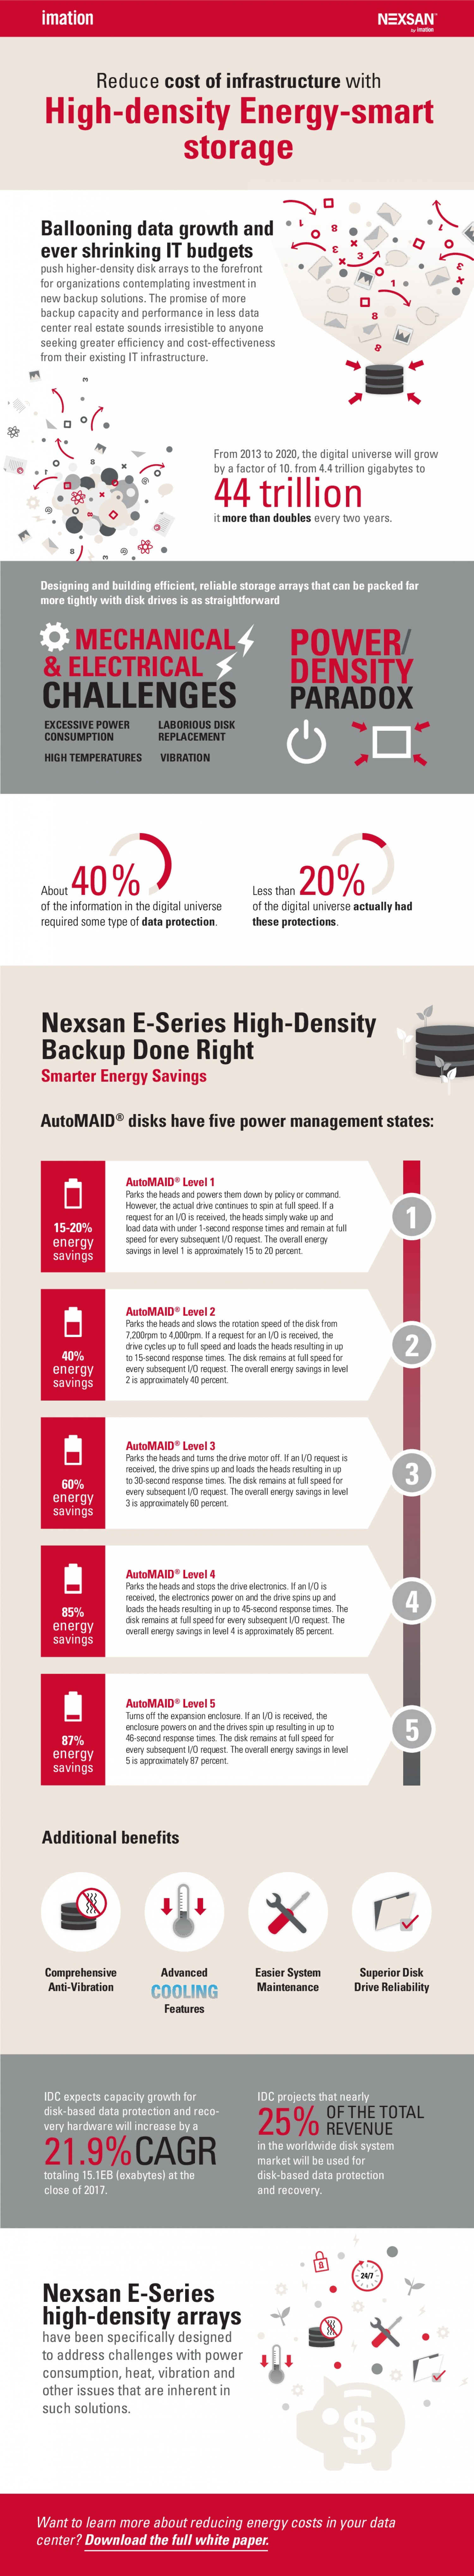 Reduce Cost of Backup Infrastructure with High-Density Energy-Smart Storage Infographic